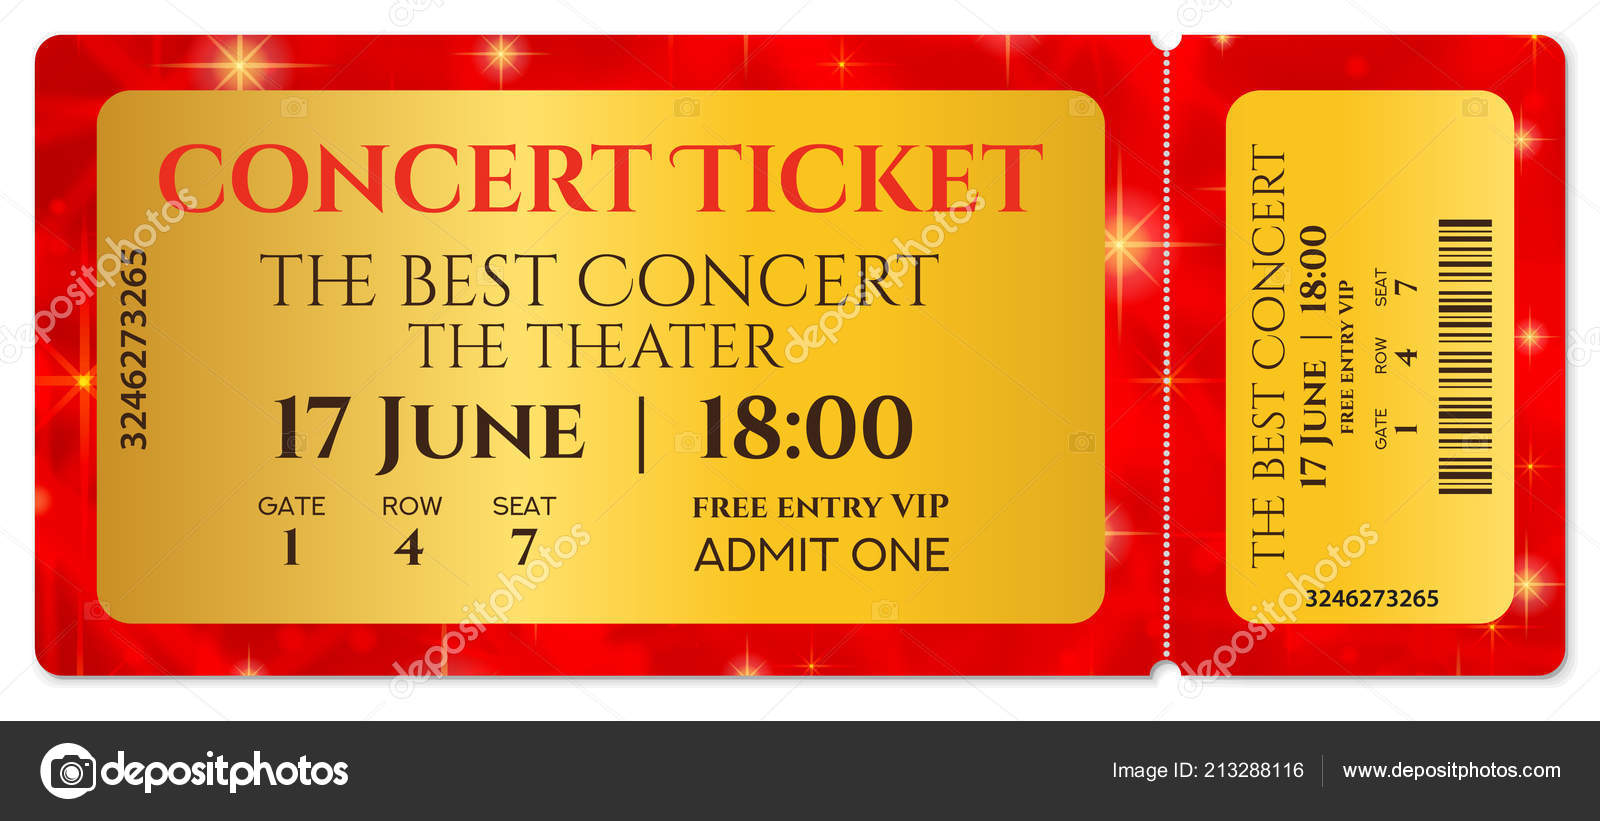 ticket template concert ticket stars tear ticket mockup red starry